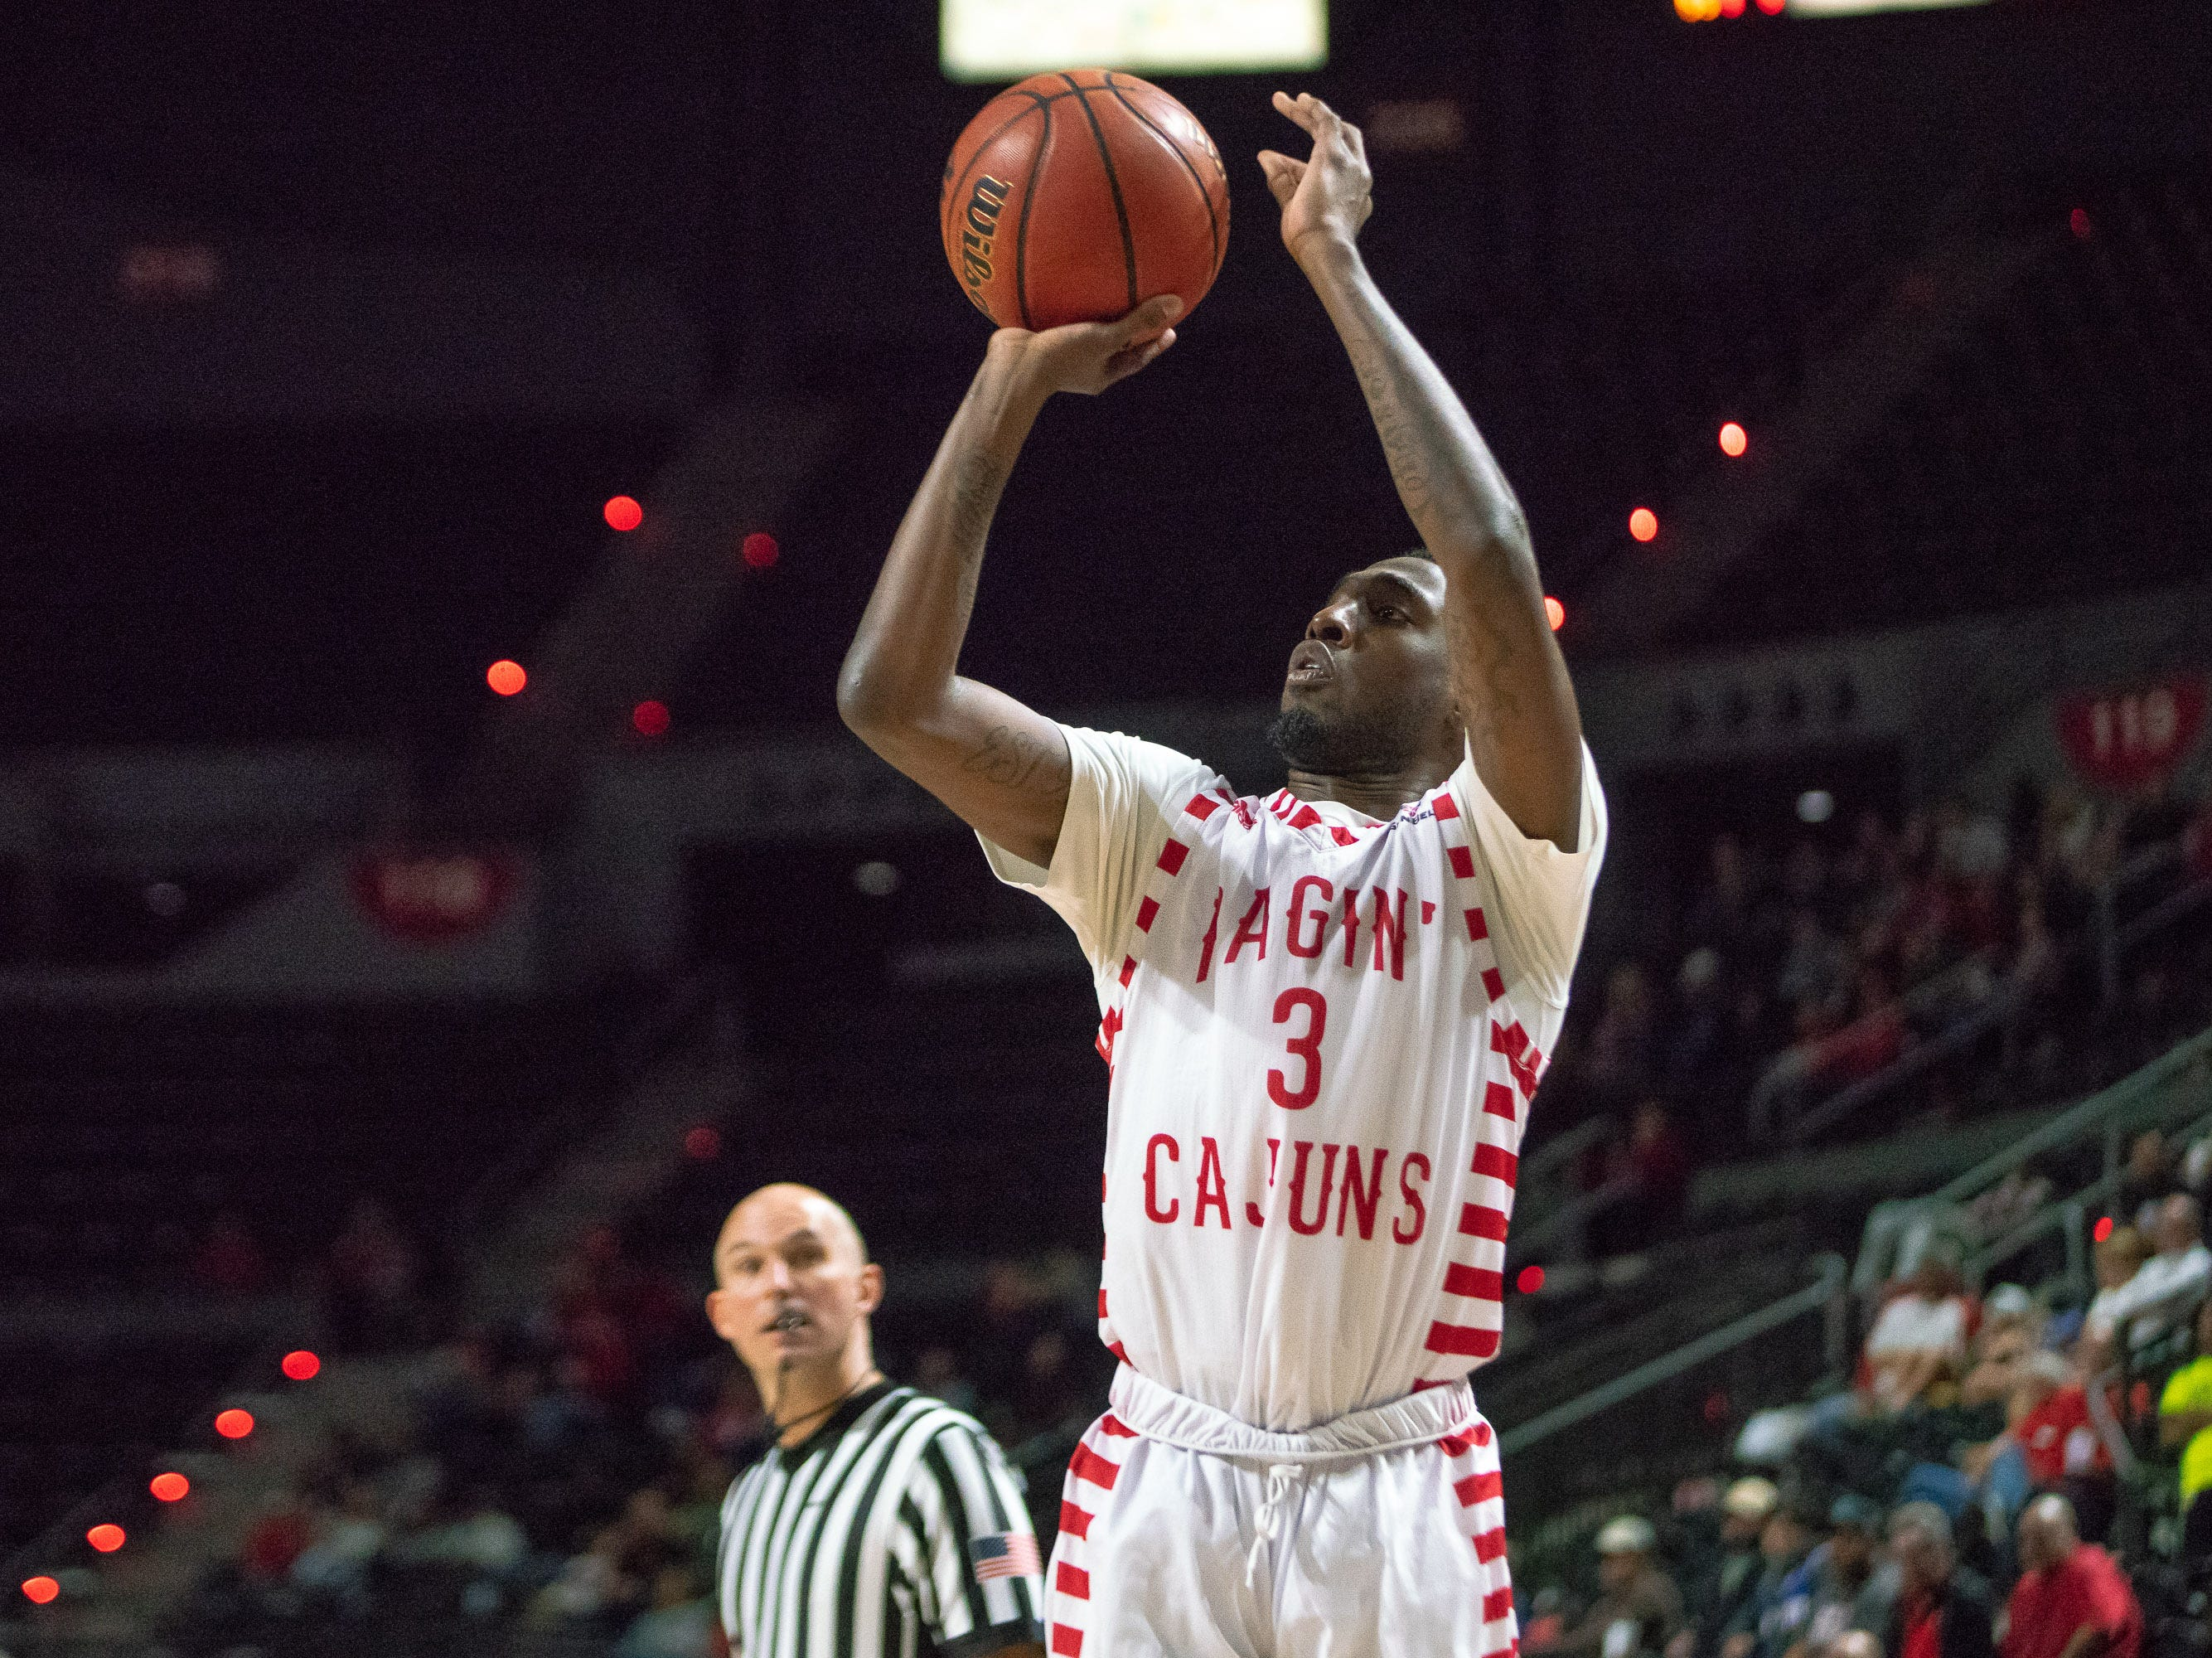 UL's Jeremy Hayes shoots the ball during the play as the Ragin' Cajuns take on the Little Rock Trojans at the Cajundome on January 5, 2019.